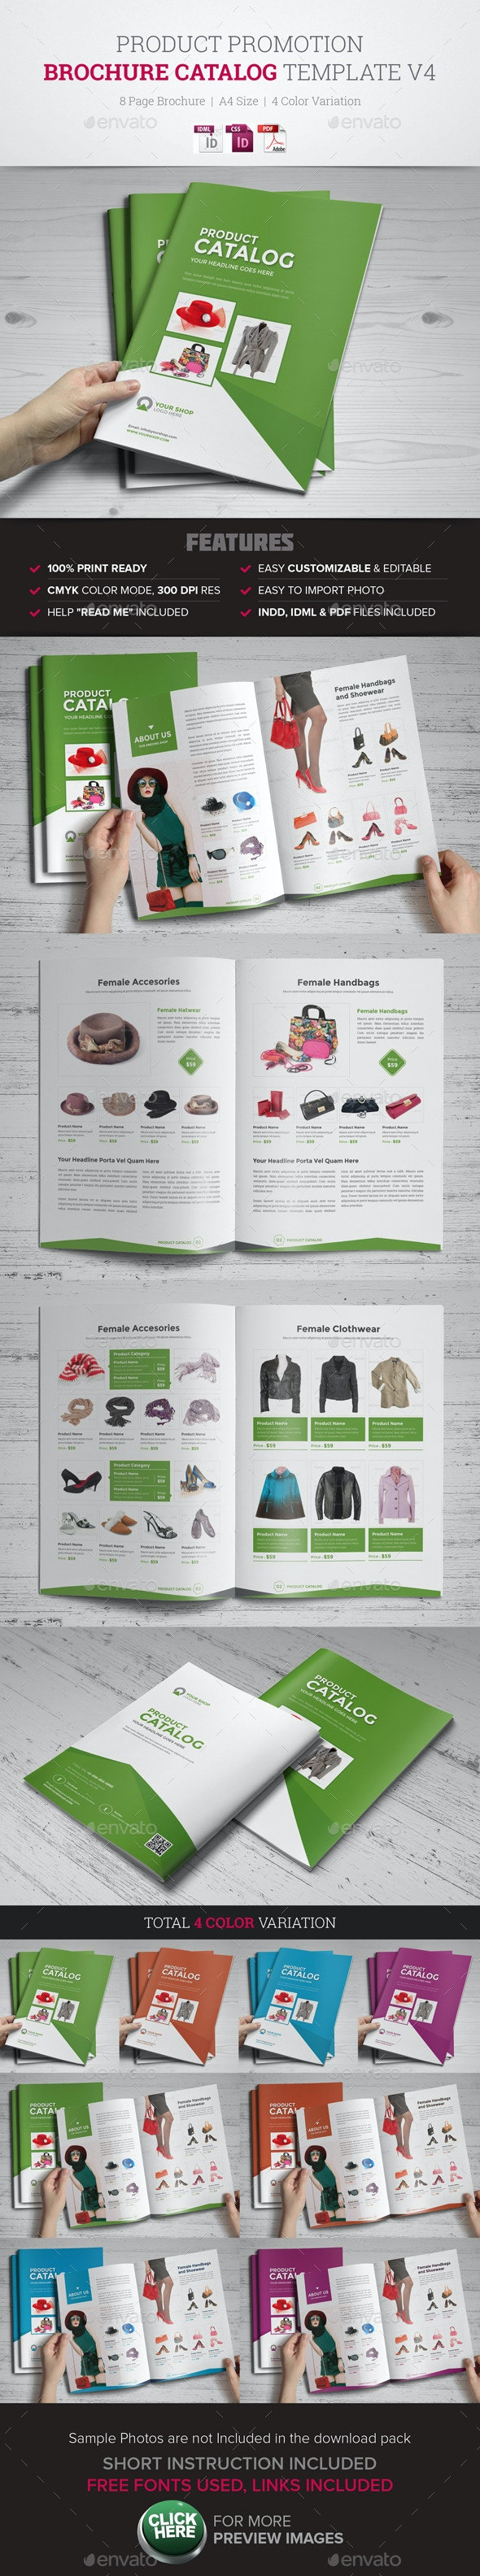 Product Promotion Catalog InDesign Template v4 - Catalogs Brochures